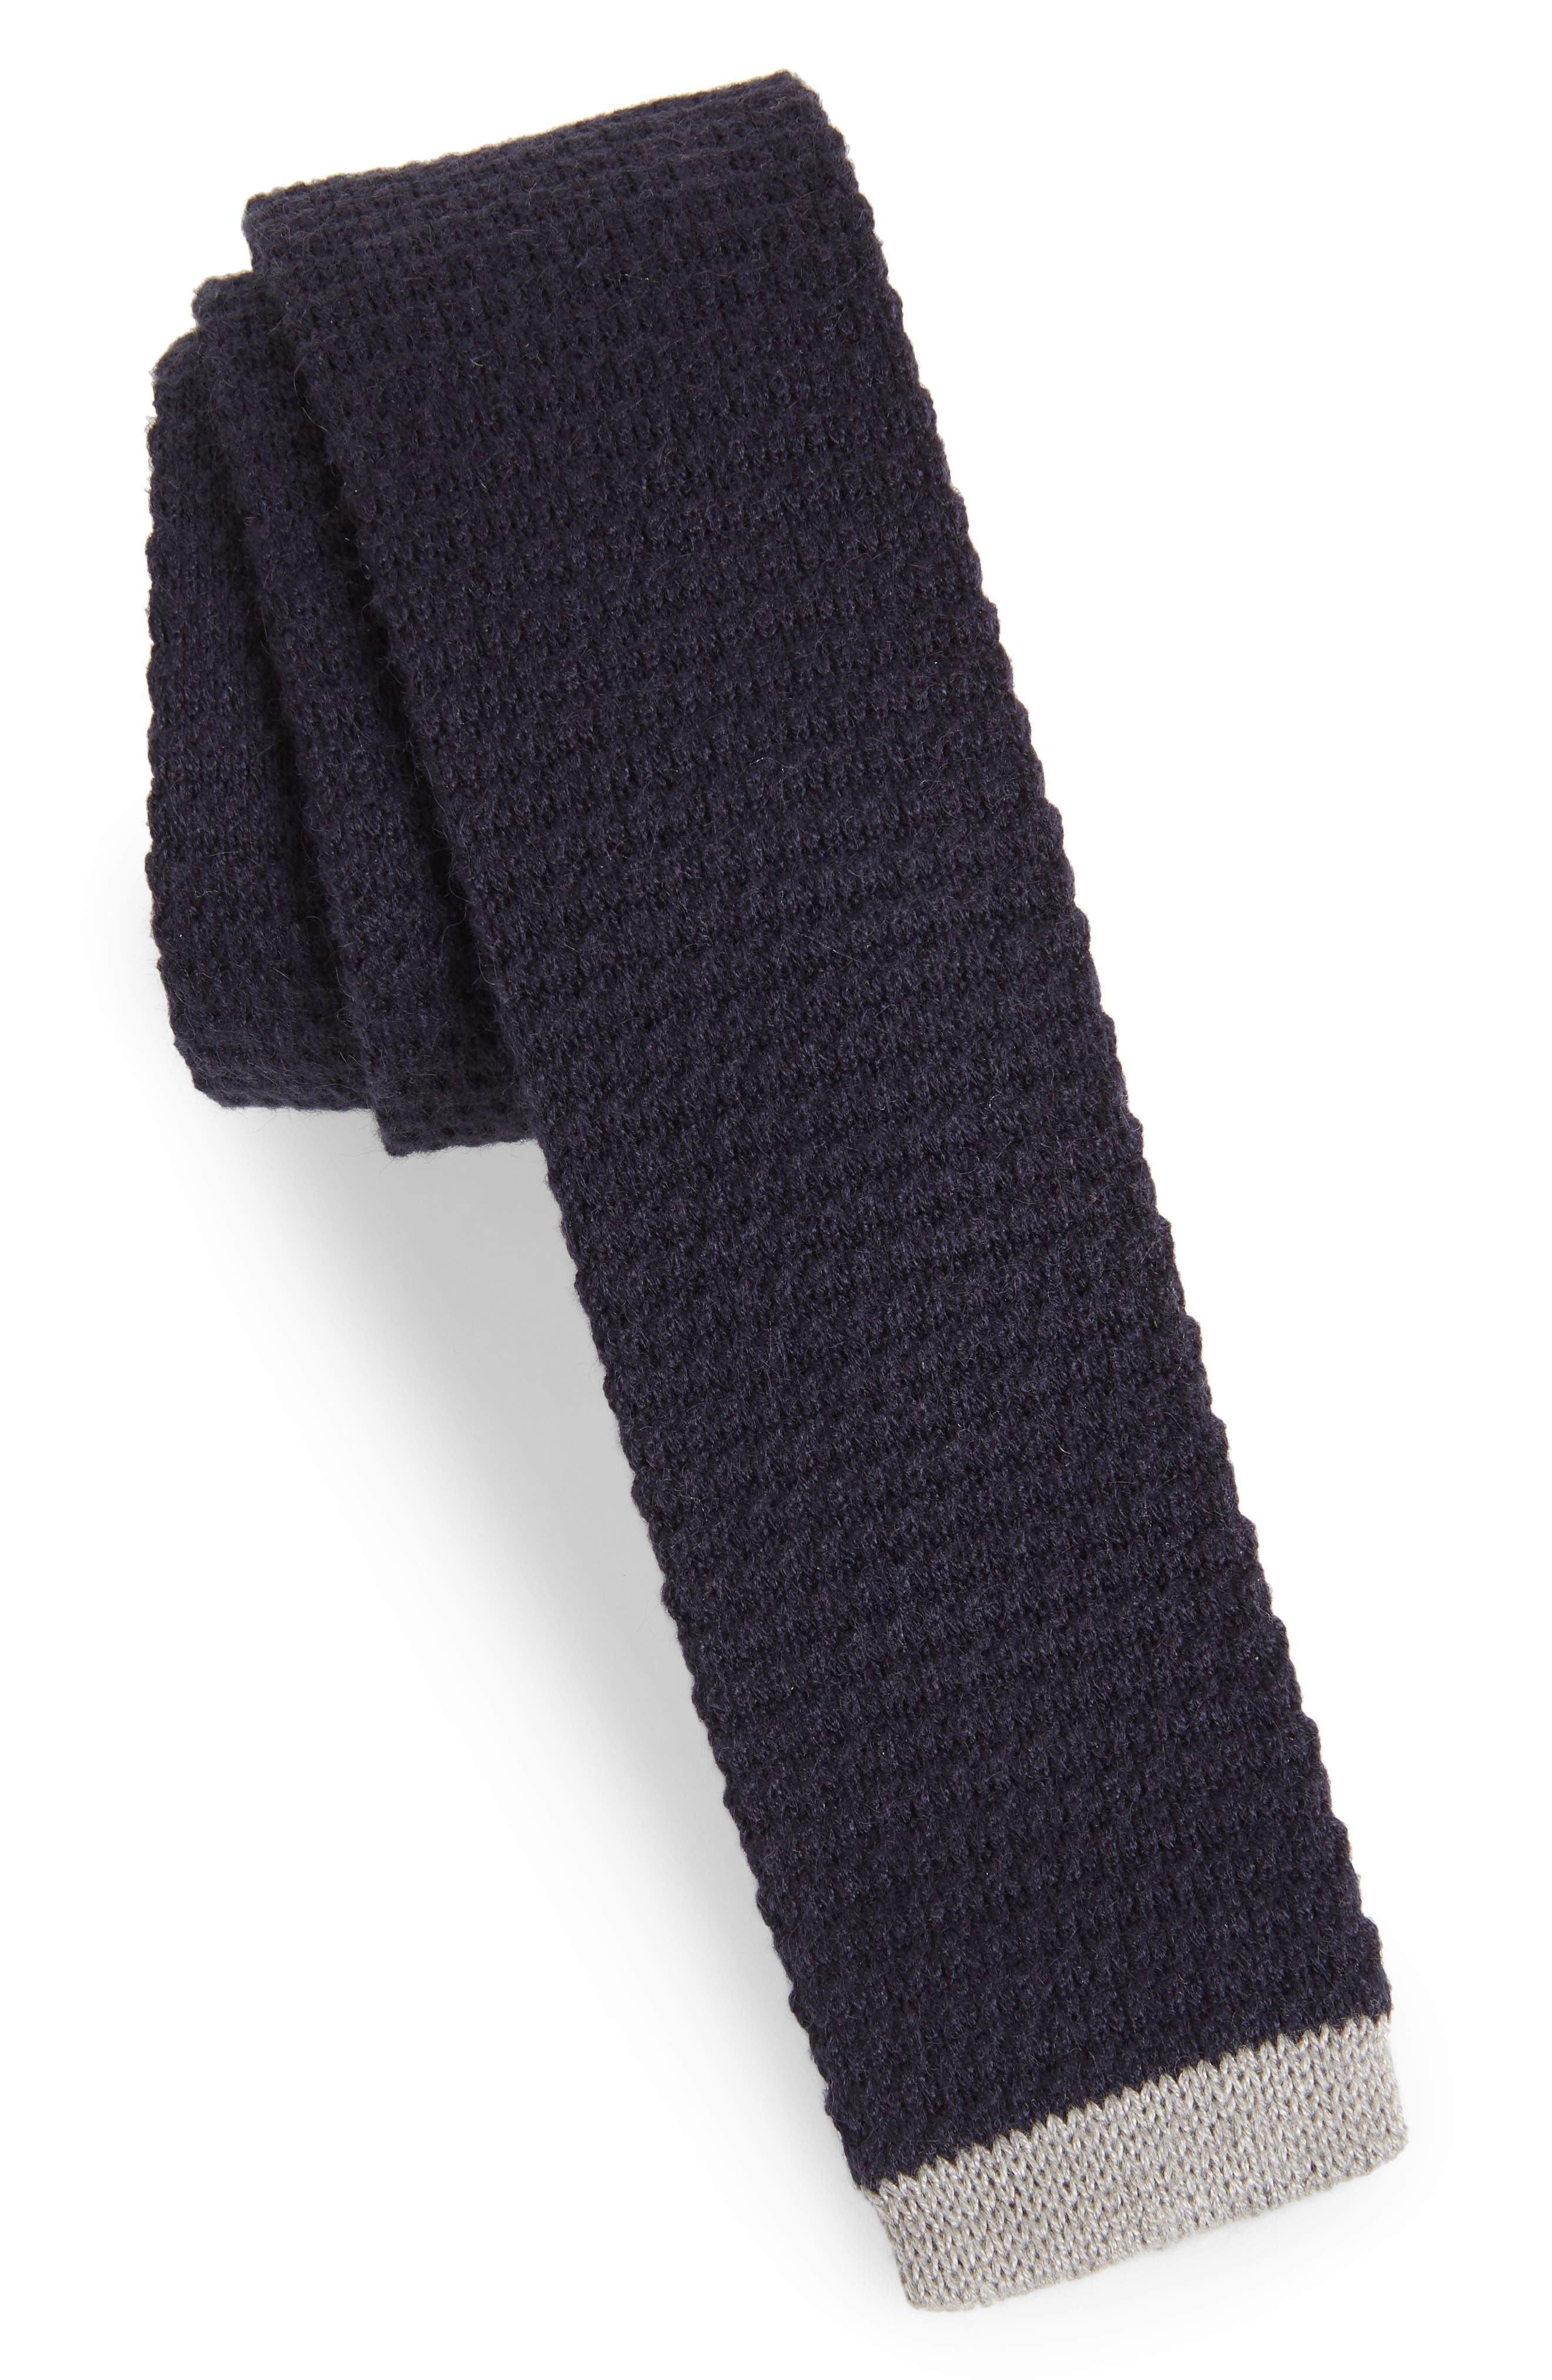 Belvin Knit Skinny Tie,                             Main thumbnail 1, color,                             Navy